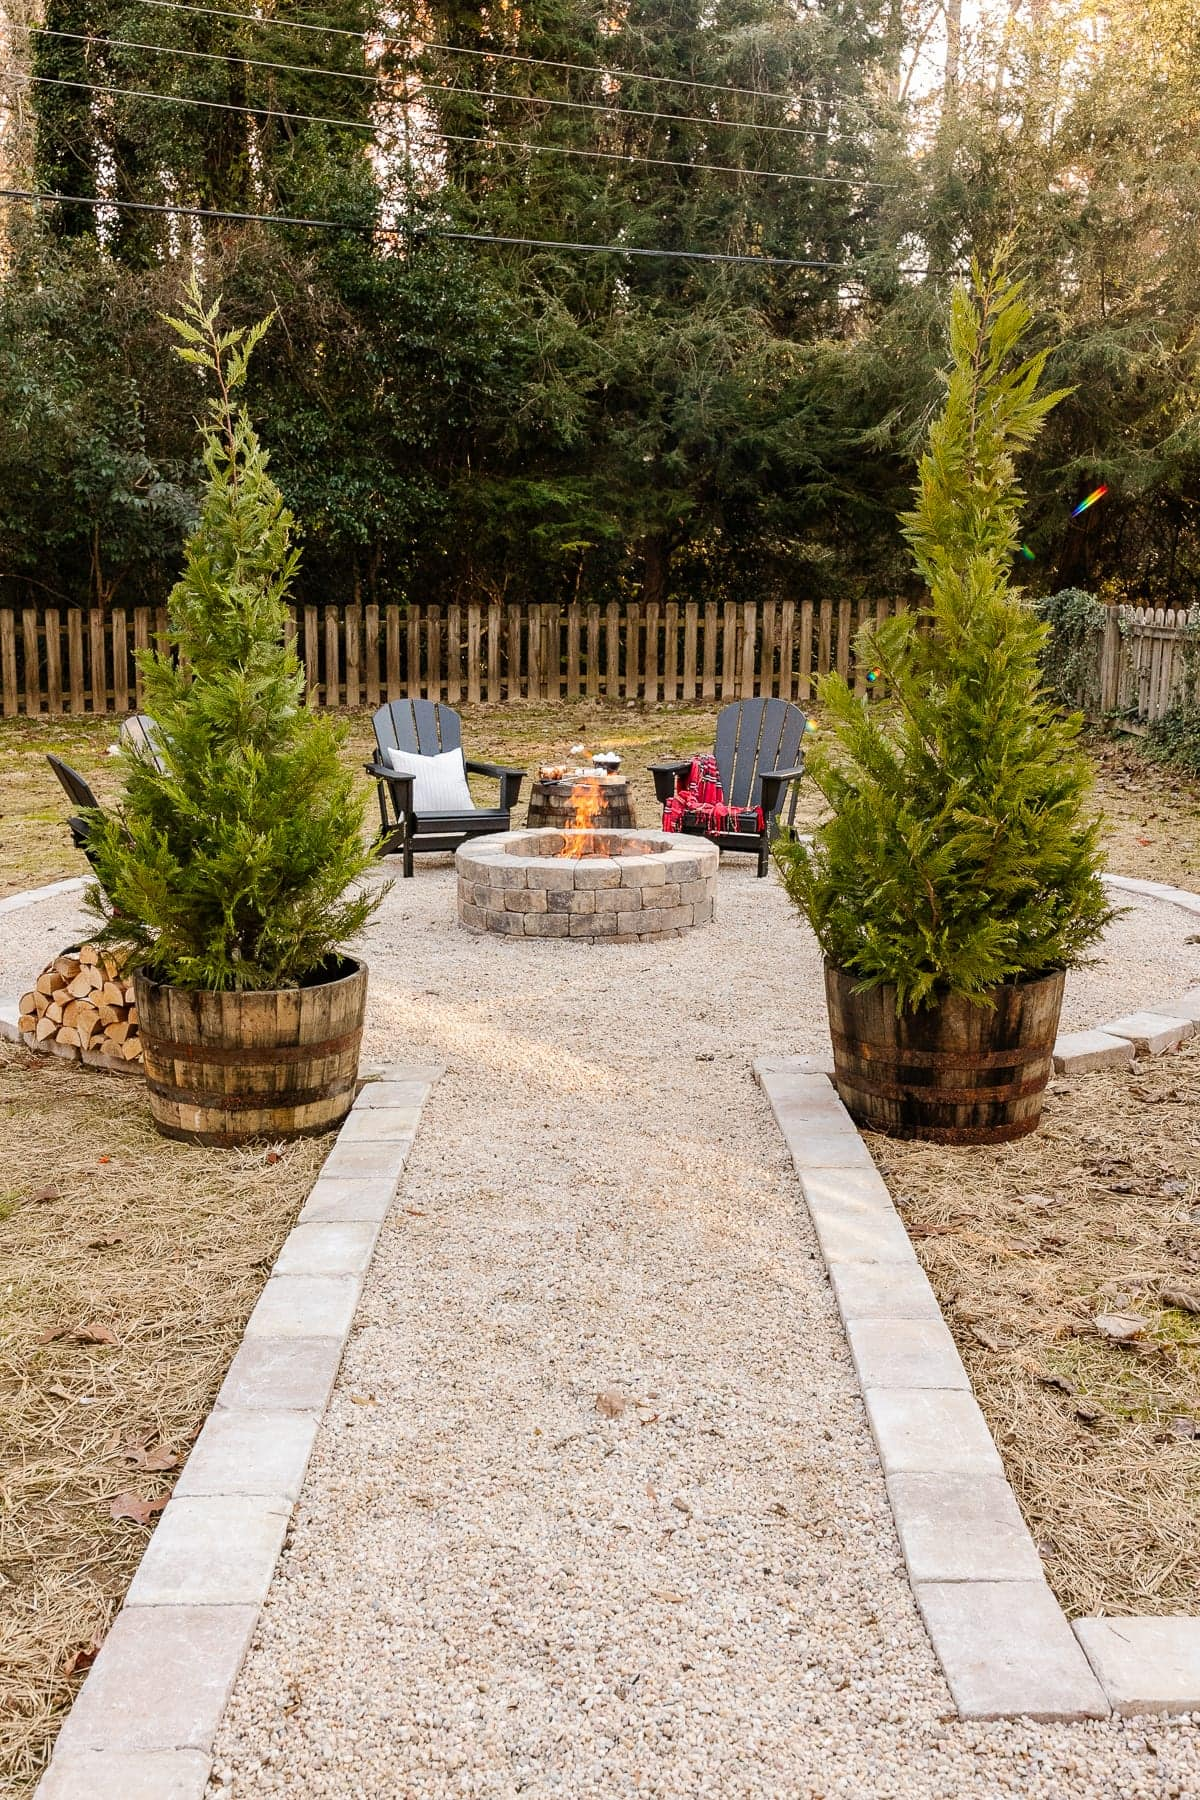 Fire pit with pea gravel, stone edge, and adirondack chairs